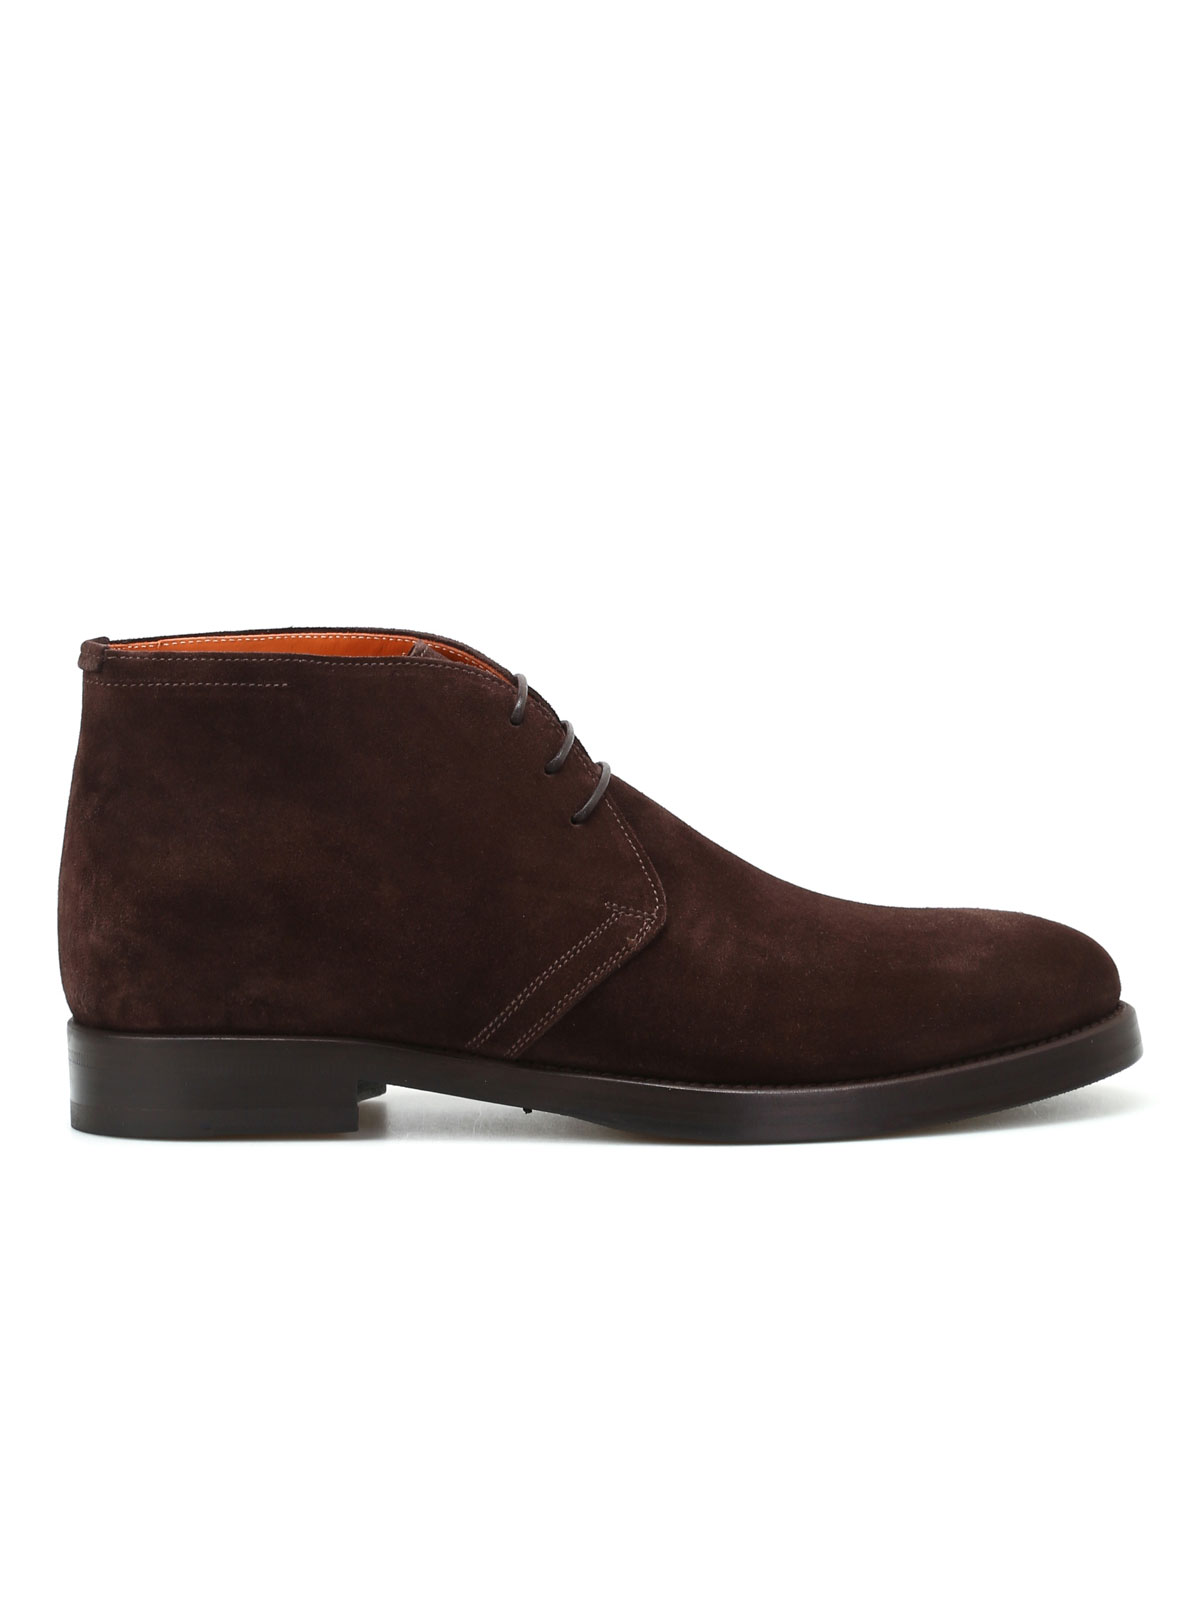 Immagine di BARRETT | FOOTWEAR Polacchini Colin marroni in suede